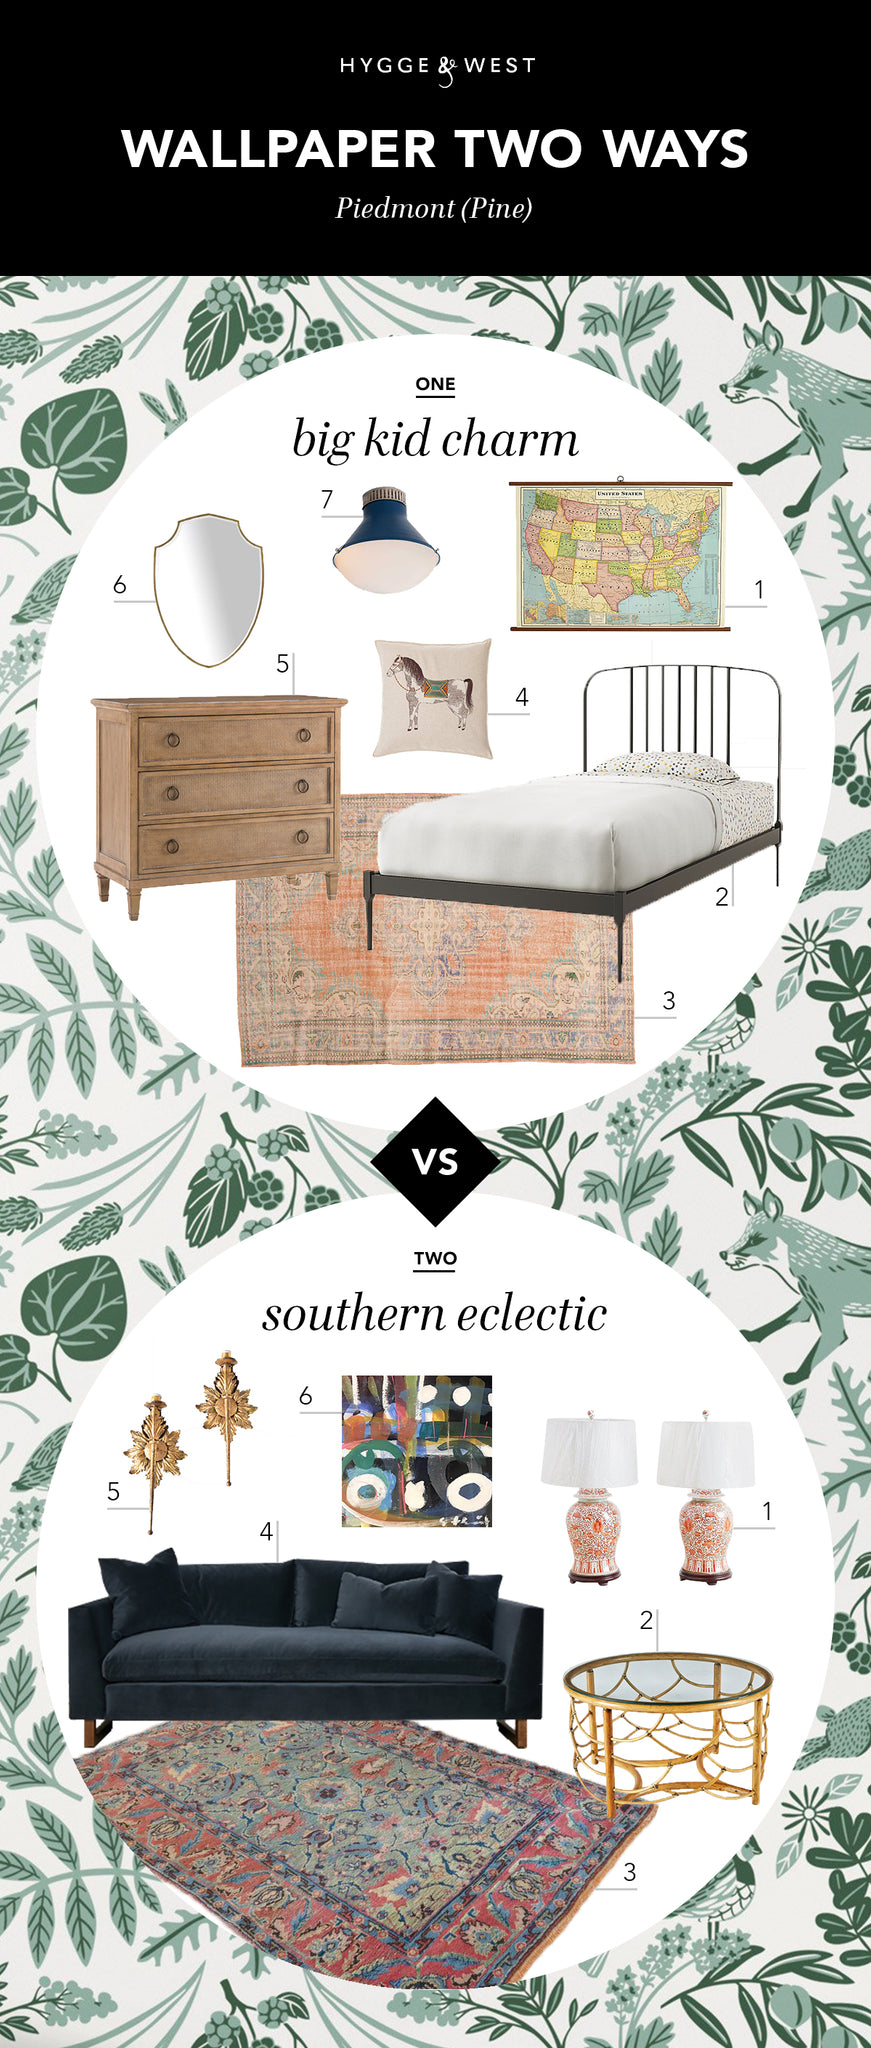 Wallpaper Two Ways: Helmsie | Piedmont Pine wallpaper | Hygge & West